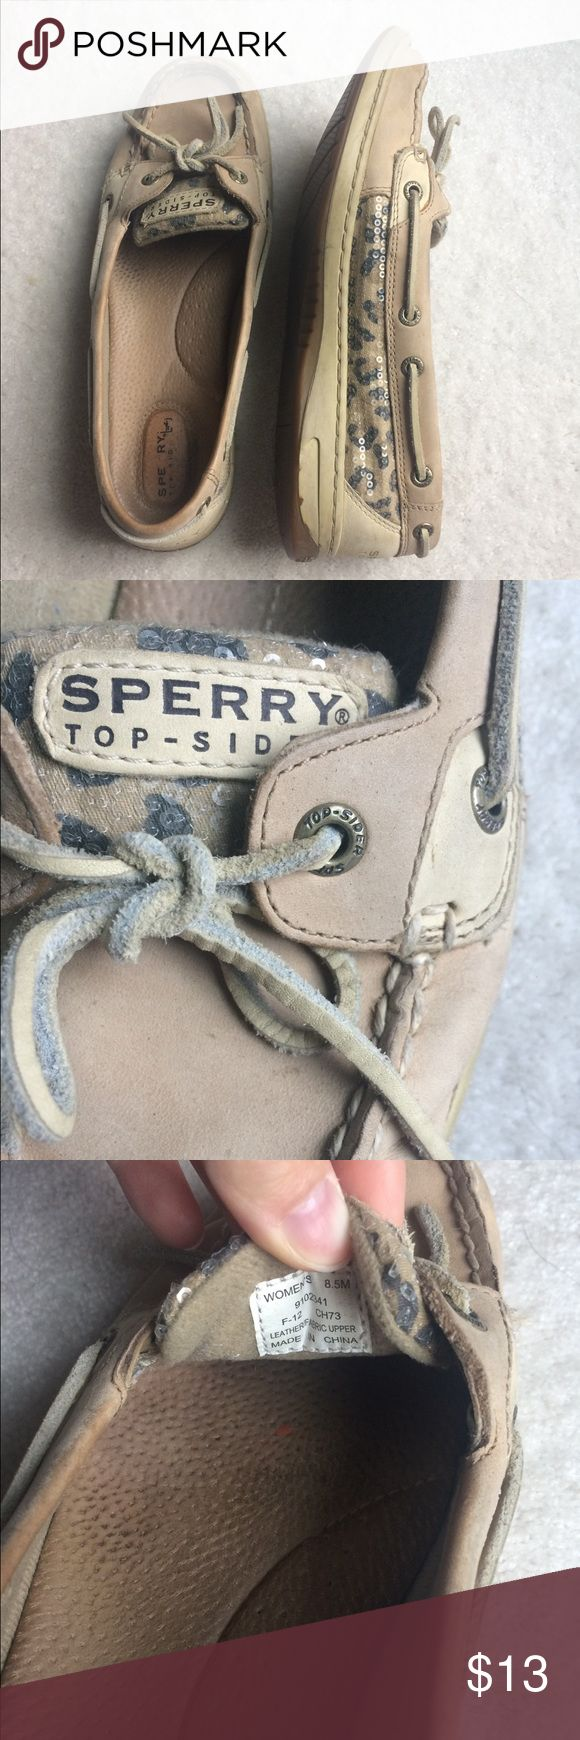 Tan Sparkly Leopard Sperry Boat Shoes Light tan. Leather boat shoes. Sparkles leopard print on sides. Small glue stains as shown in last picture. Used but lots of life left! Sperry Shoes Flats & Loafers